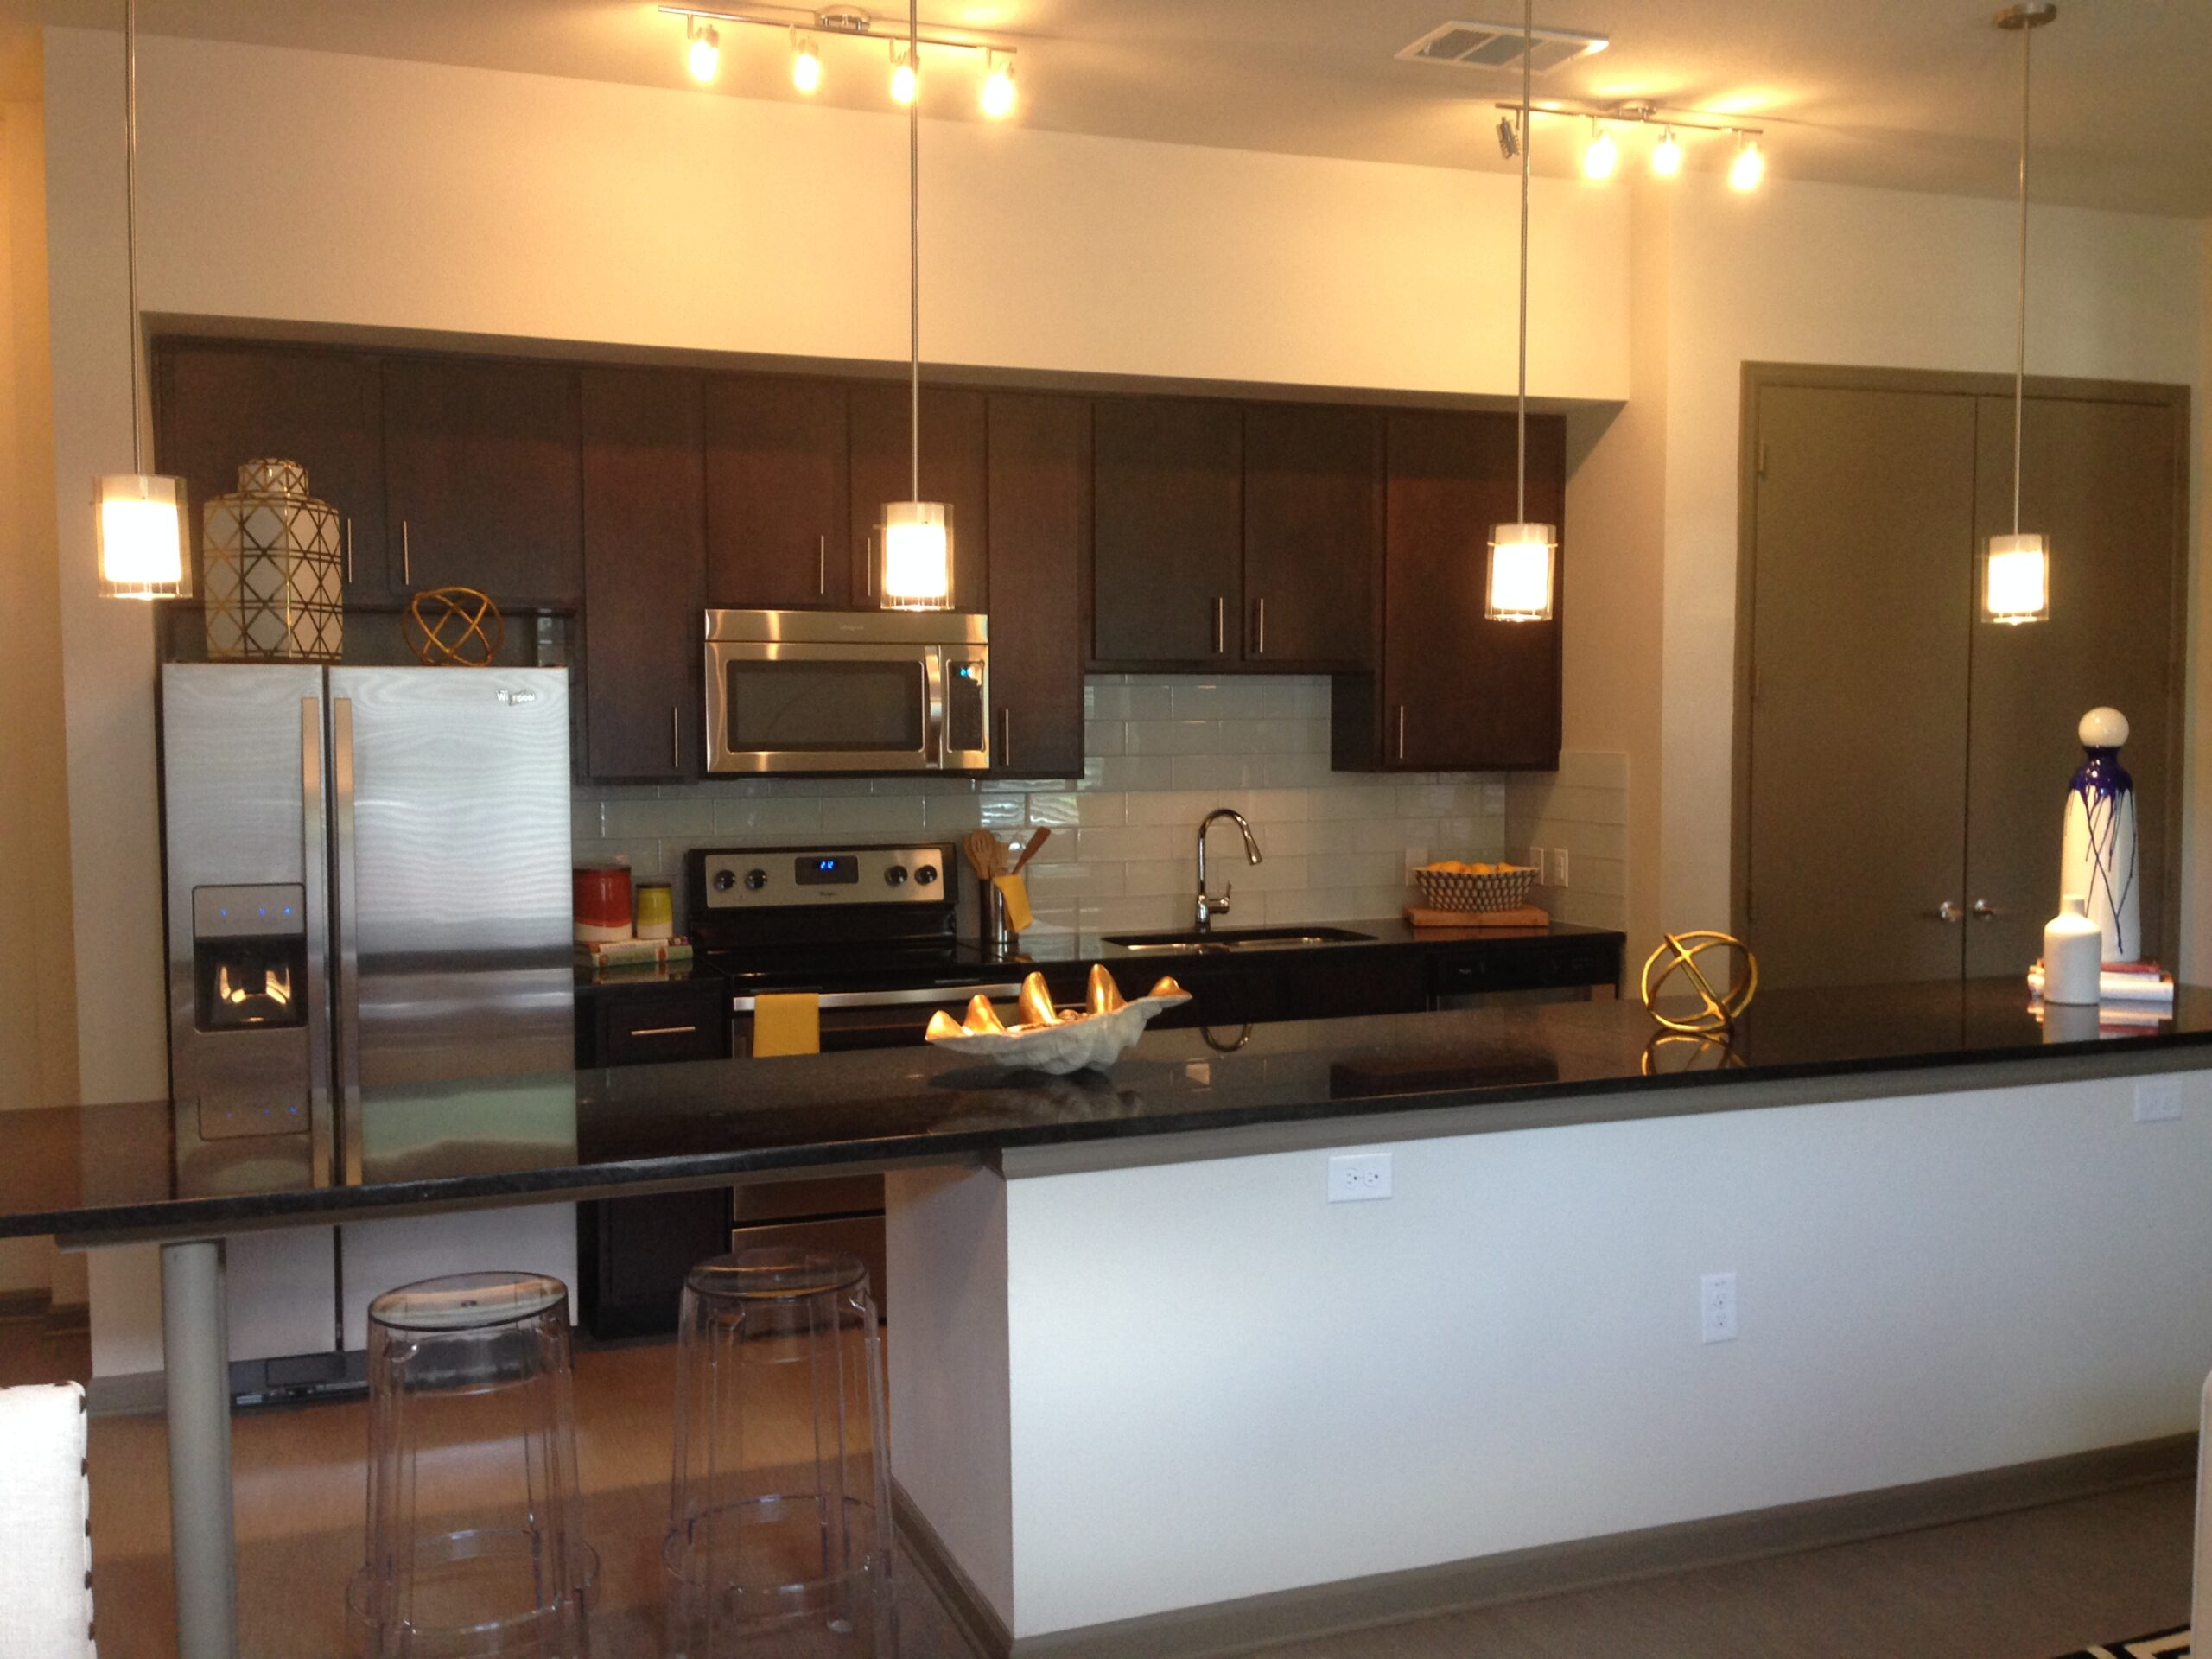 Apartment stainless steel